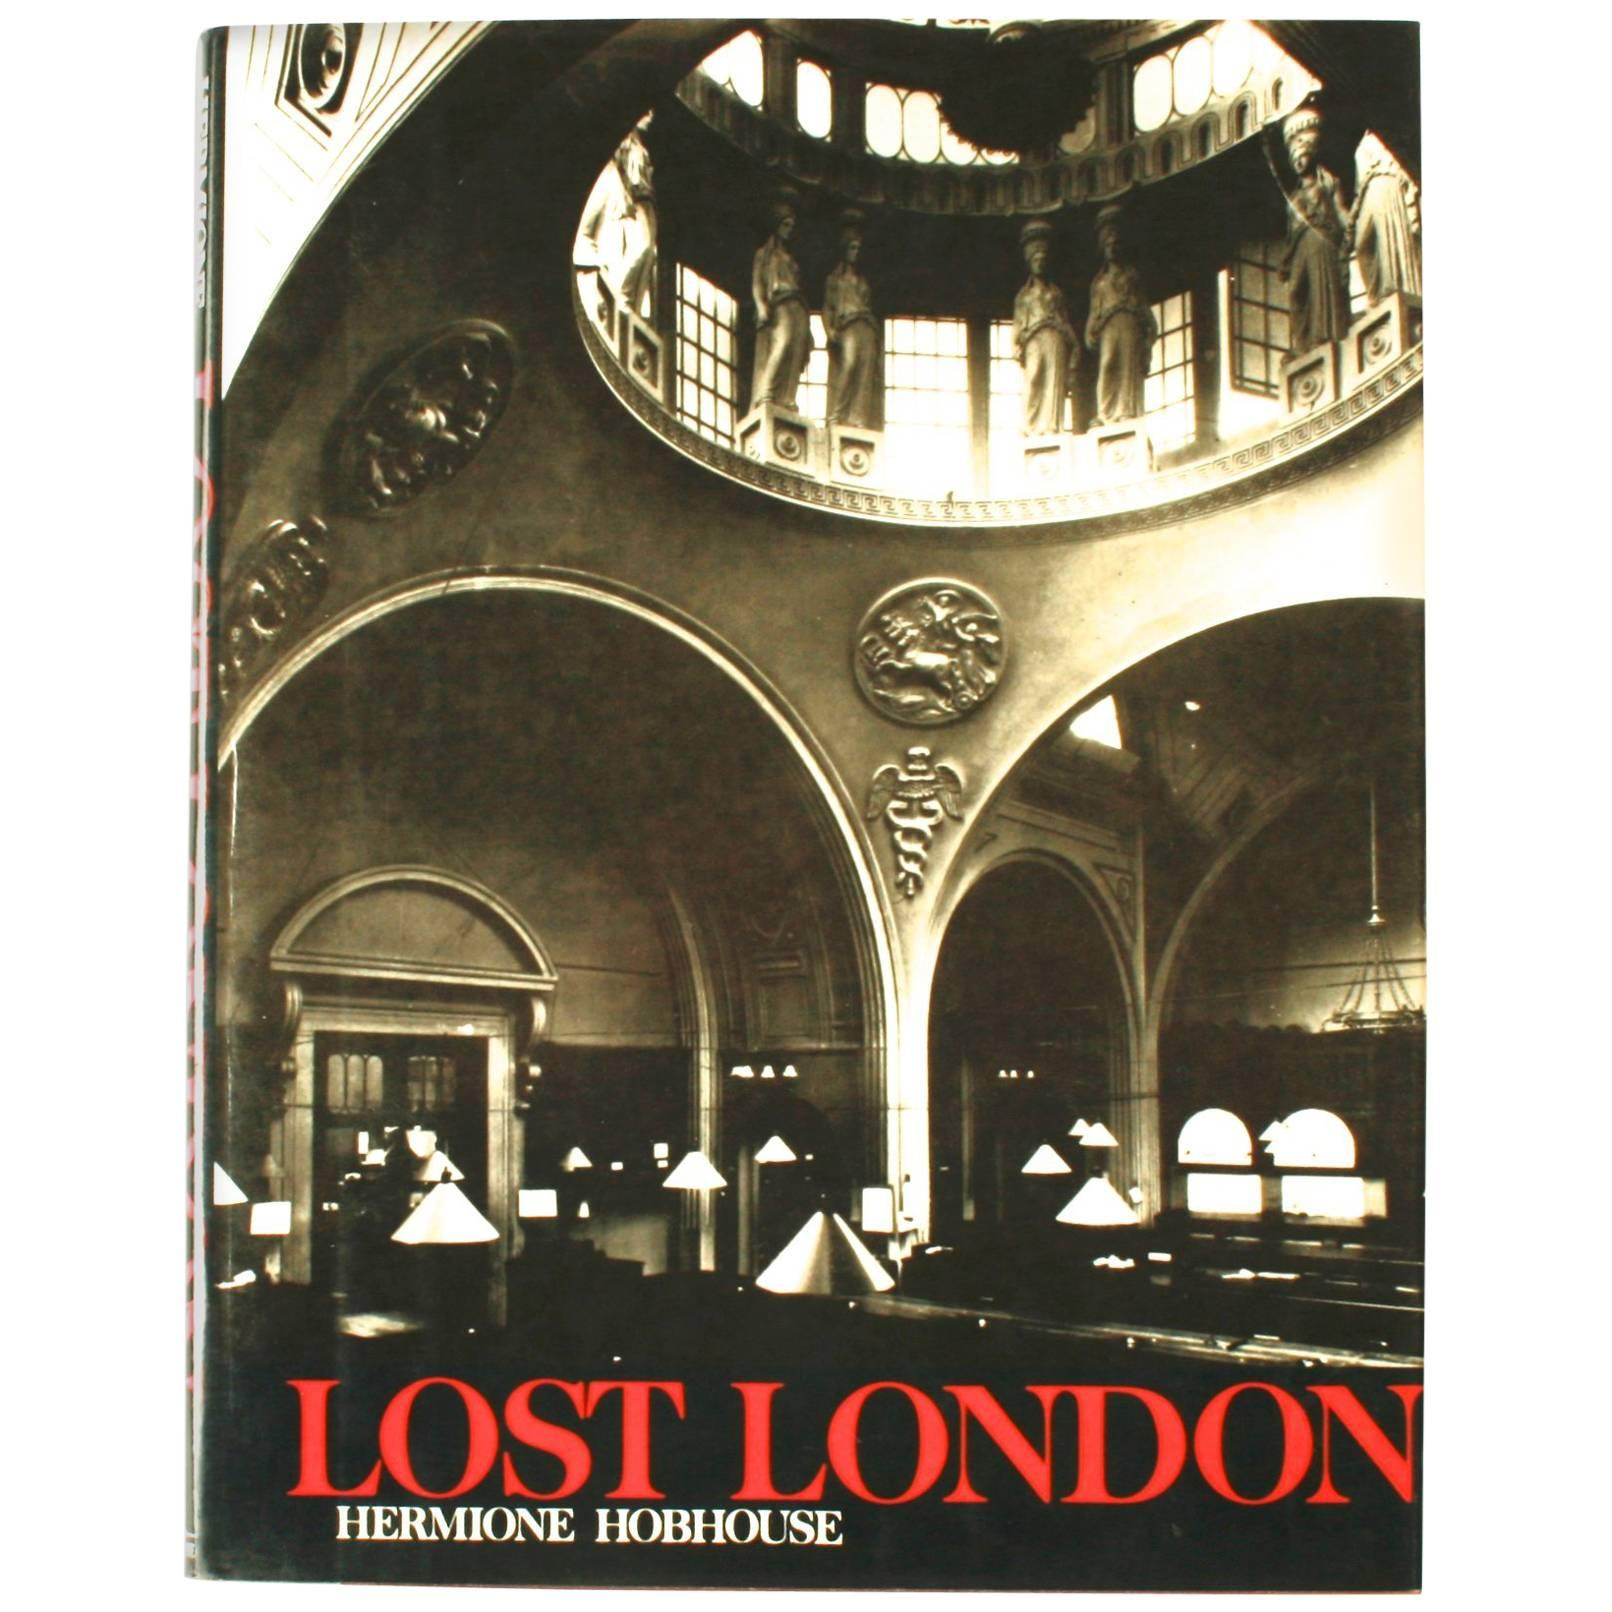 Lost London by Hermoine Hothouse, 1st Ed